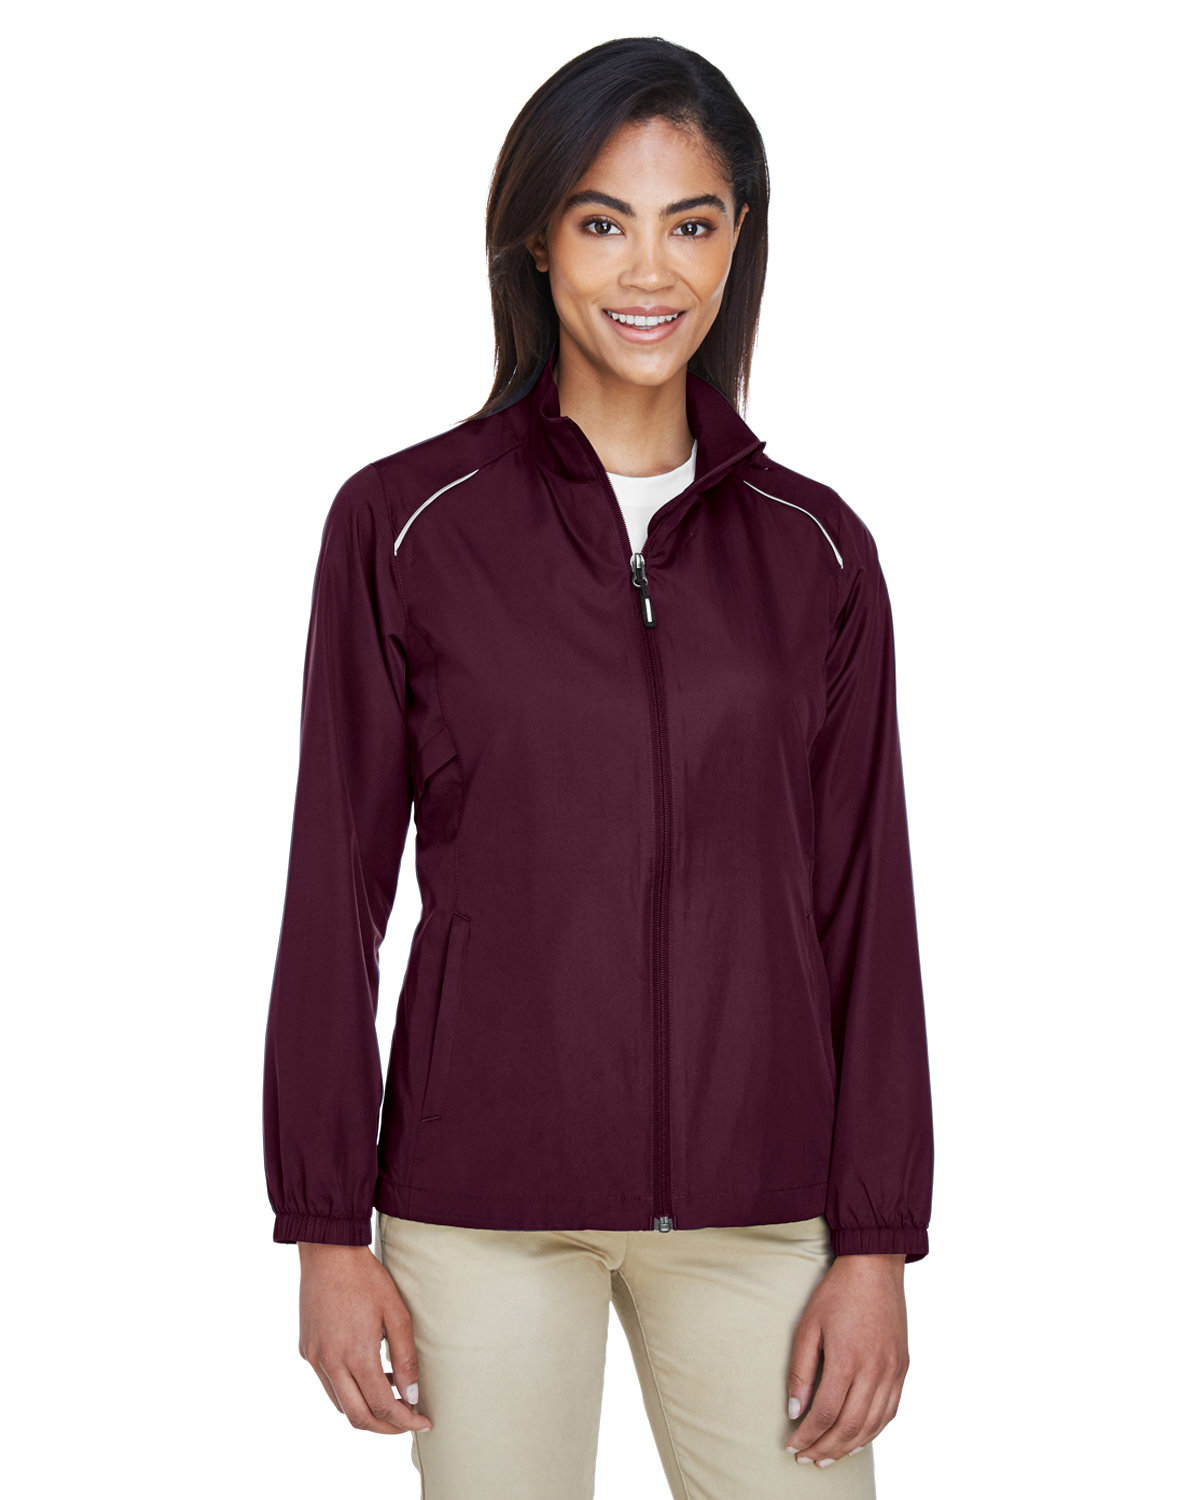 Core 365 Ladies' Motivate Unlined Lightweight Jacket BURGUNDY